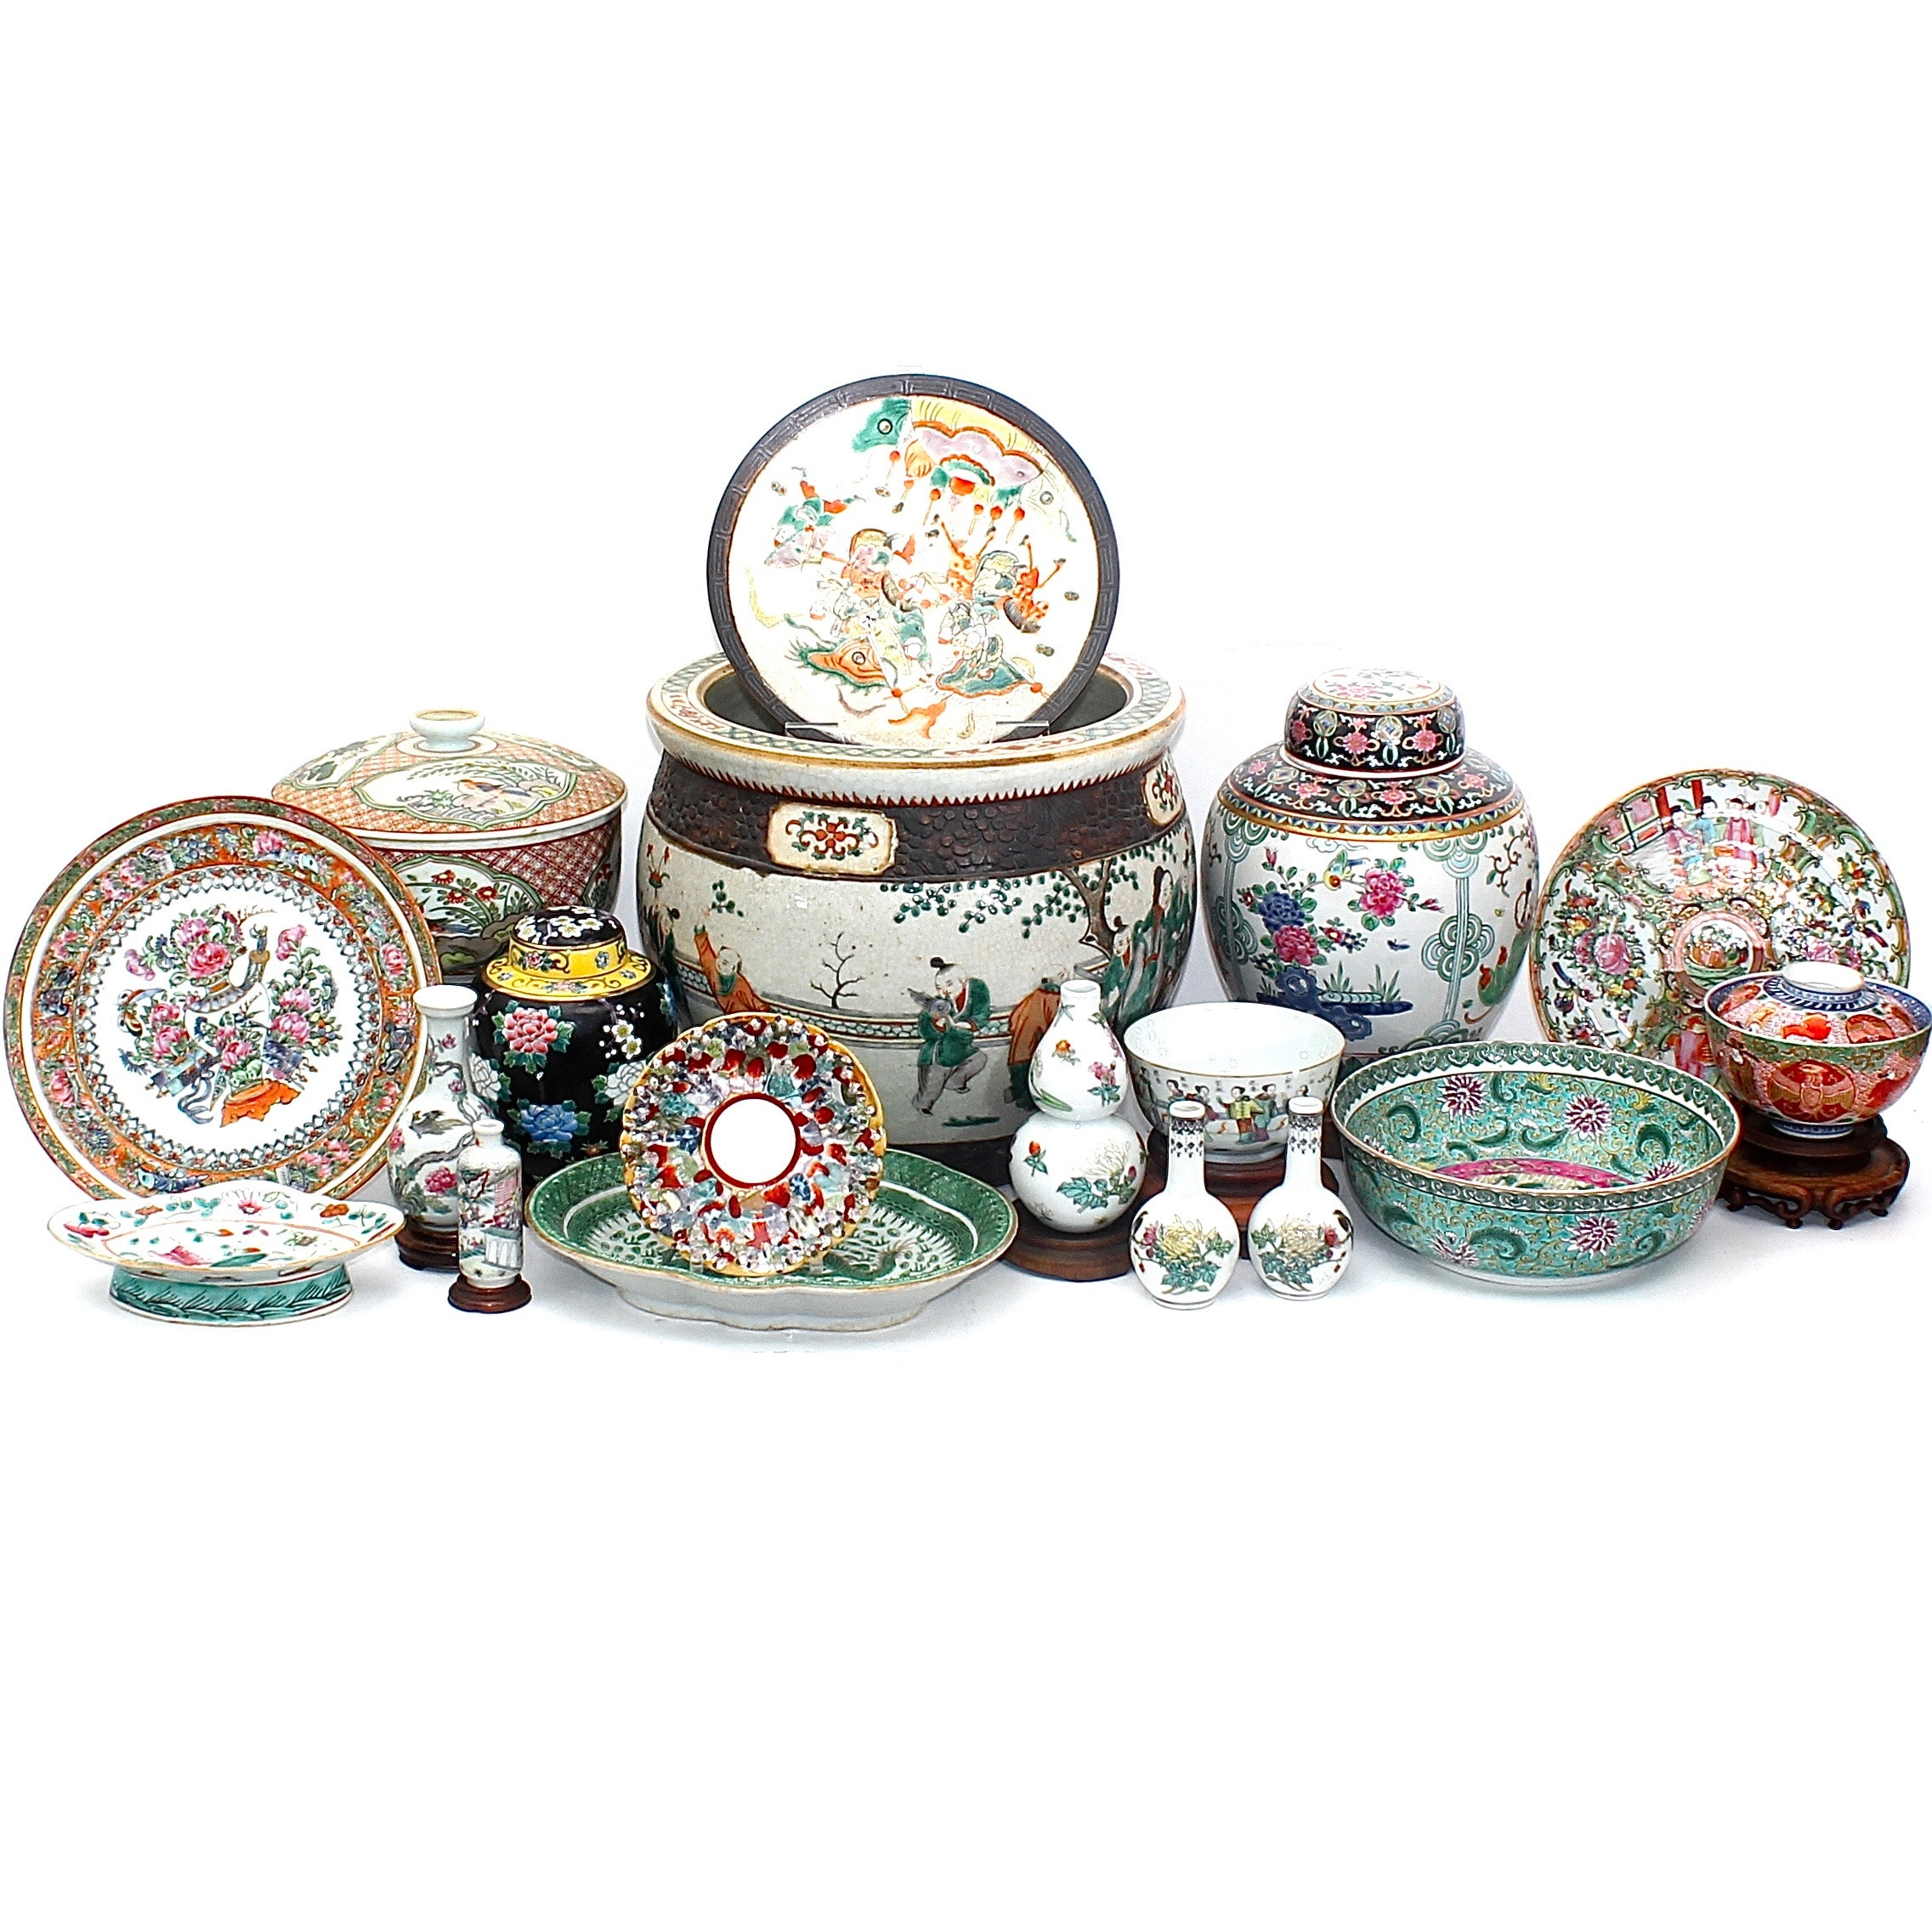 Assortment of Chinese Porcelain Including Antique Import Decor